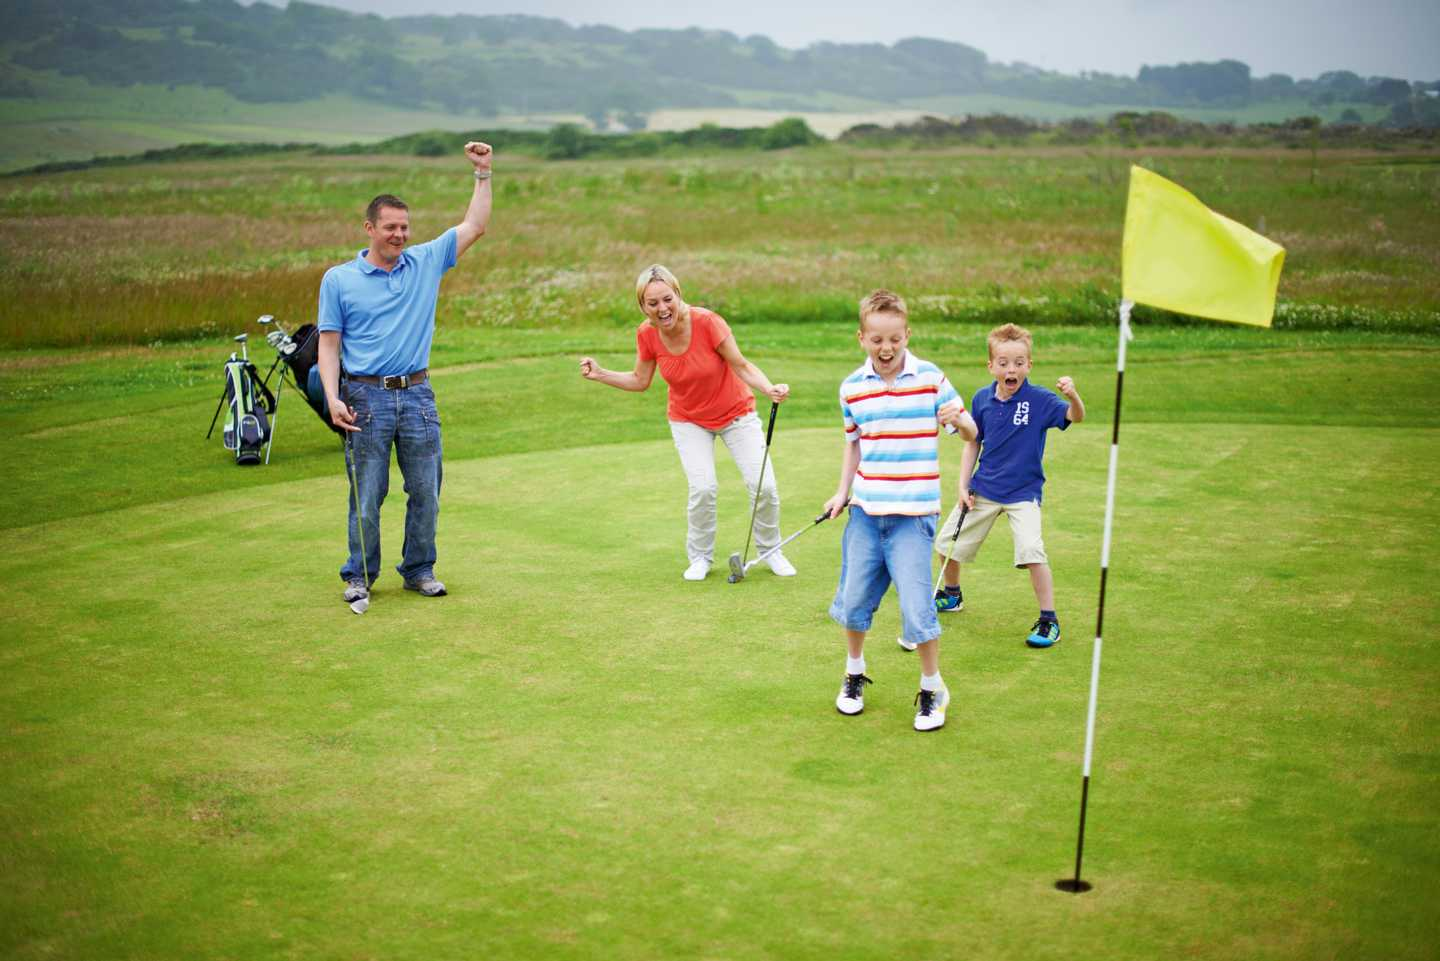 Family putting on the golf green